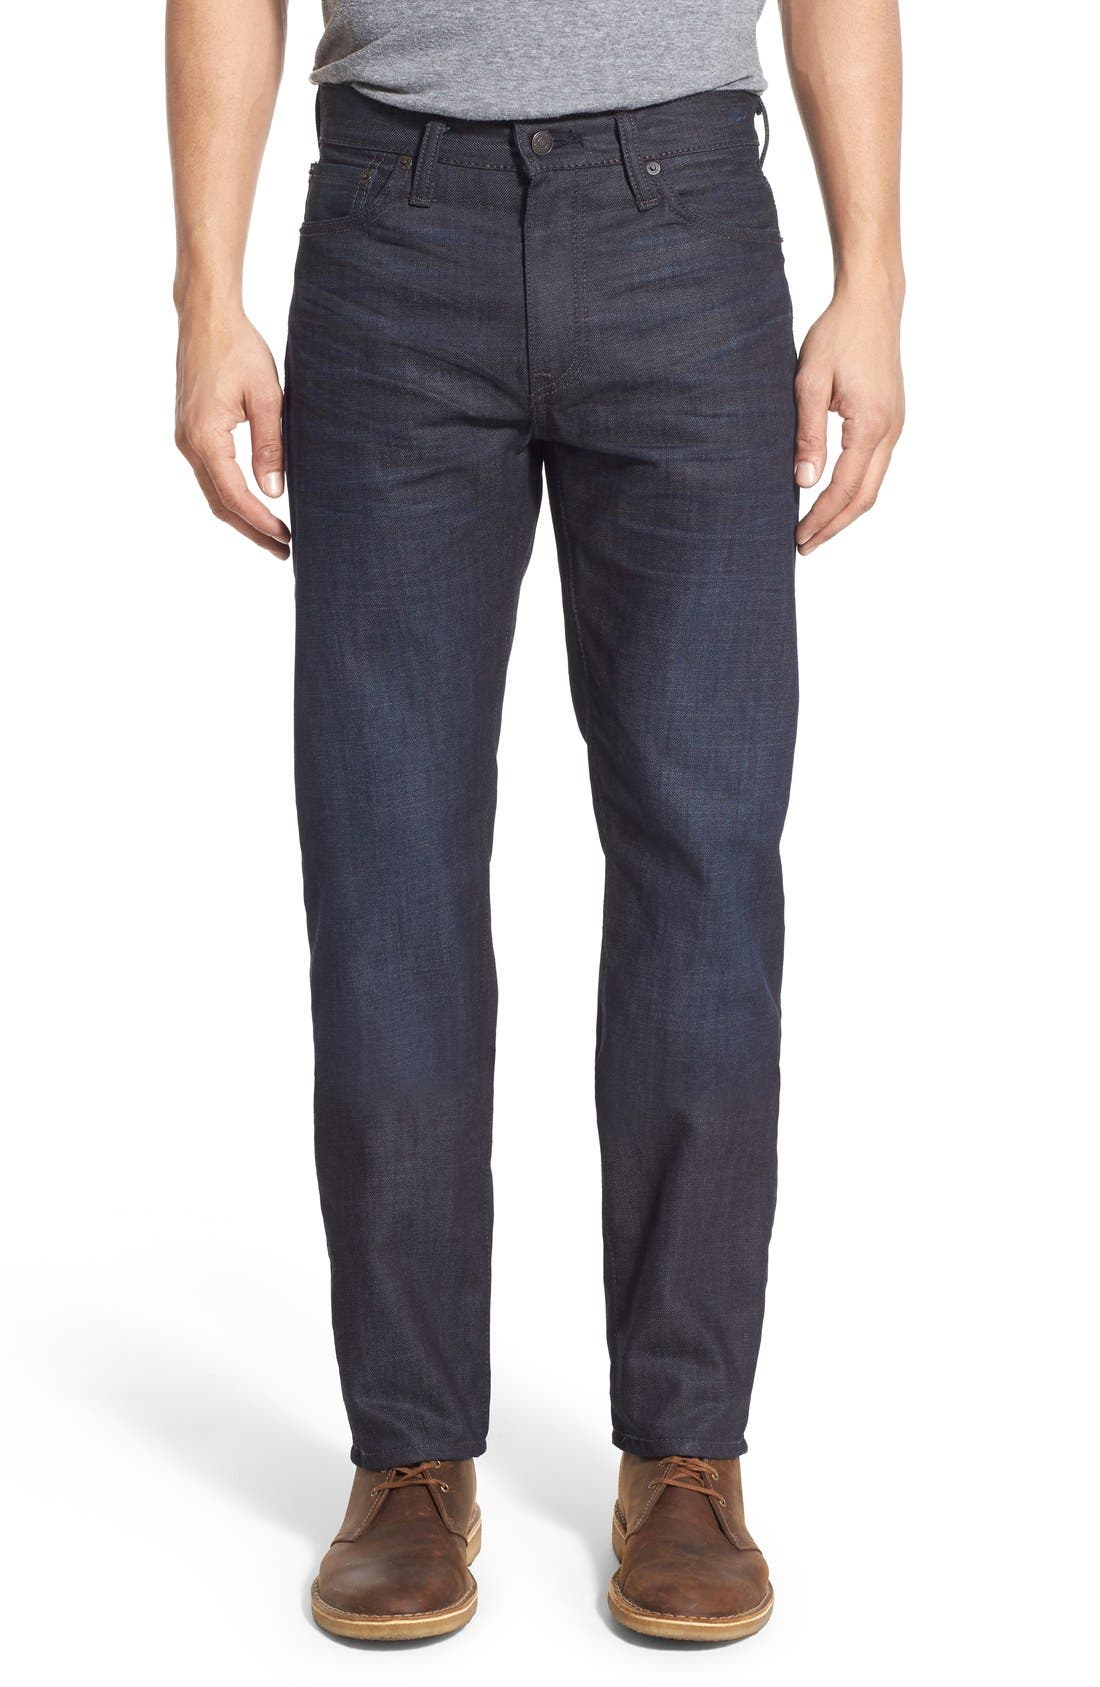 Alternate Image 1 Selected - Levi's® 513™ Slim Straight Leg Jeans (Scraper Dark)